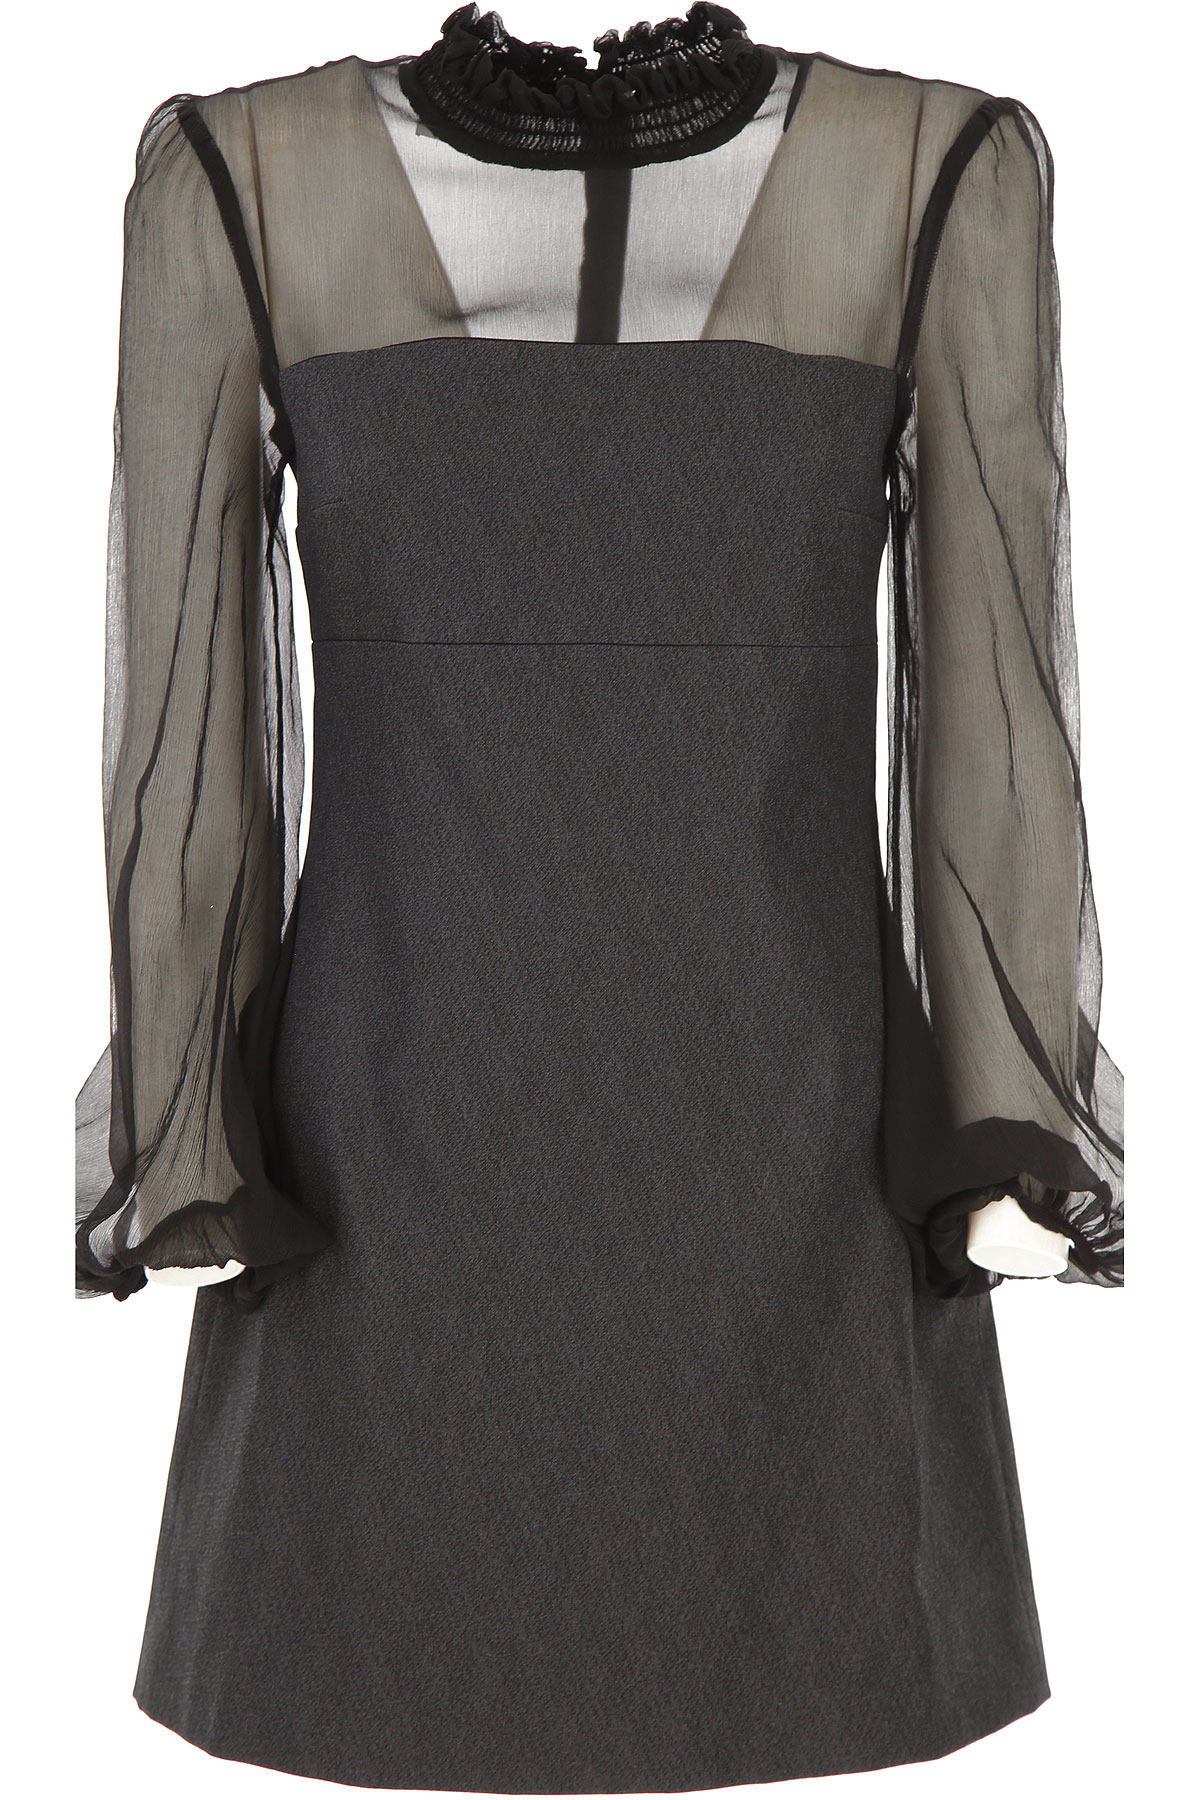 Dondup Dress for Women, Evening Cocktail Party On Sale, Black, Cotton, 2019, 2 8